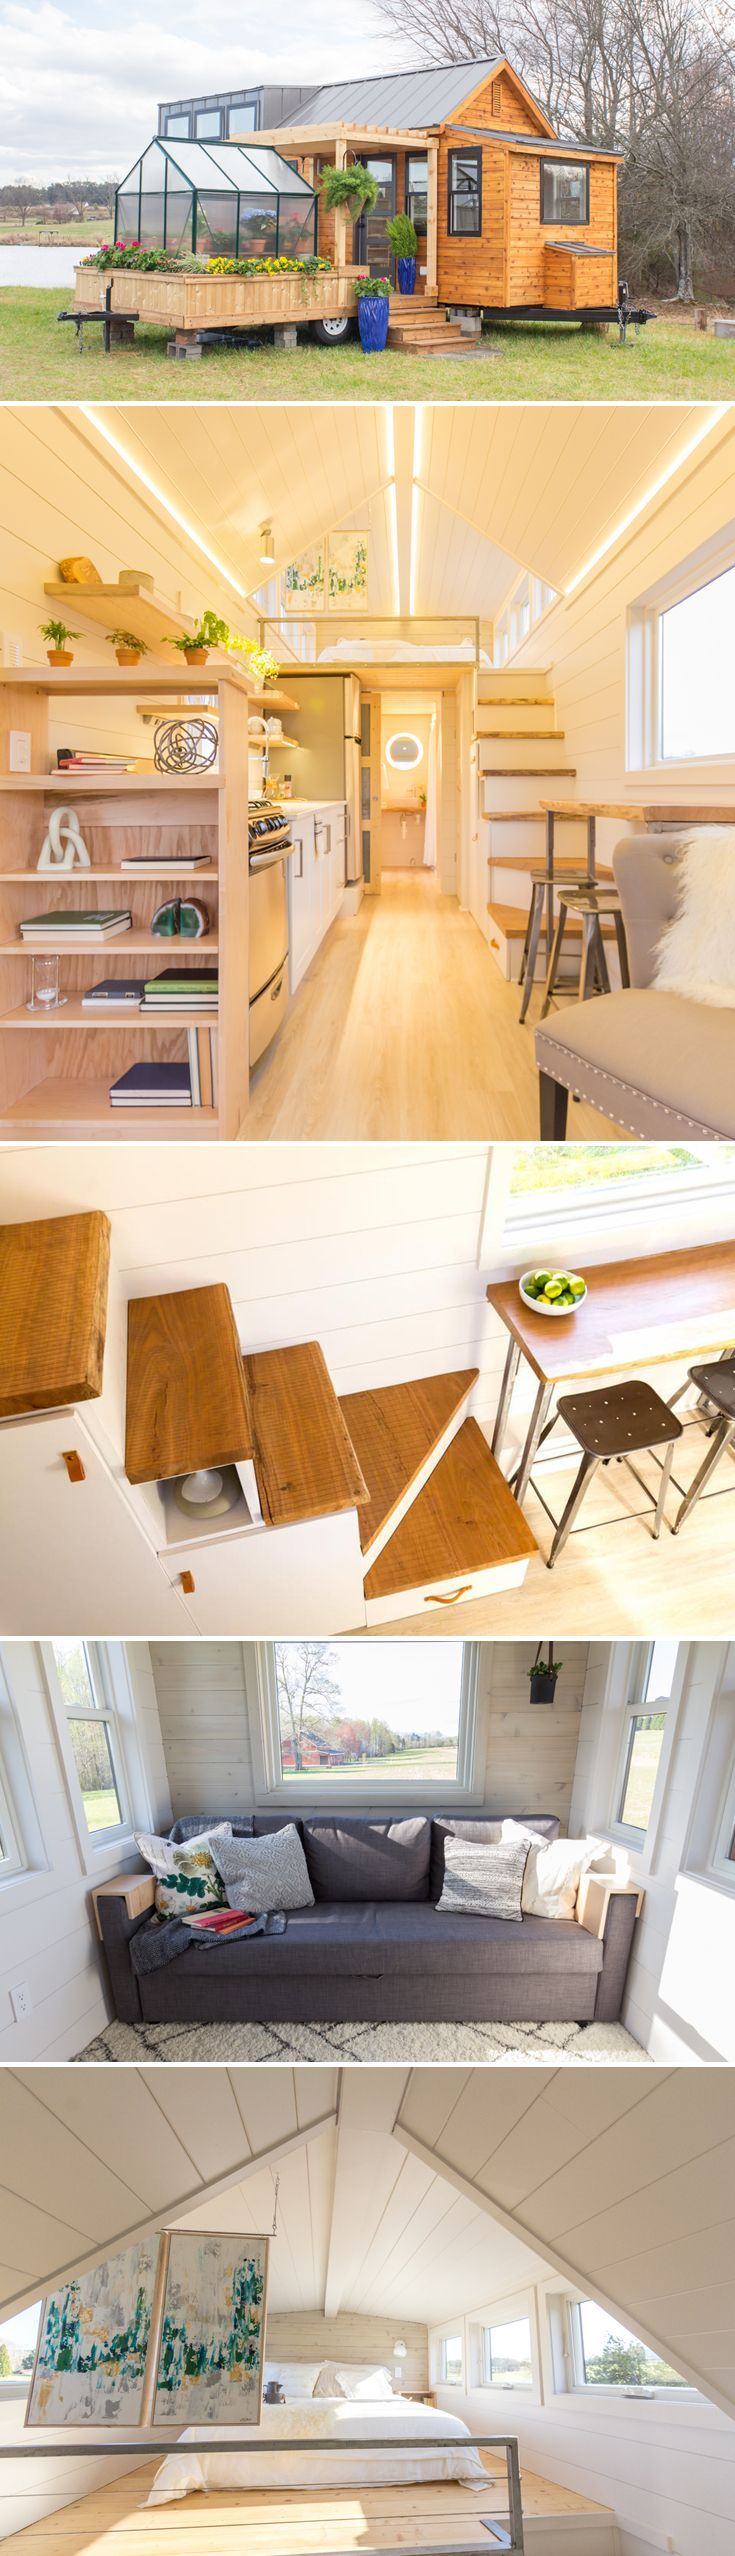 Elsa by Olive Nest Tiny Homes - Tiny Living